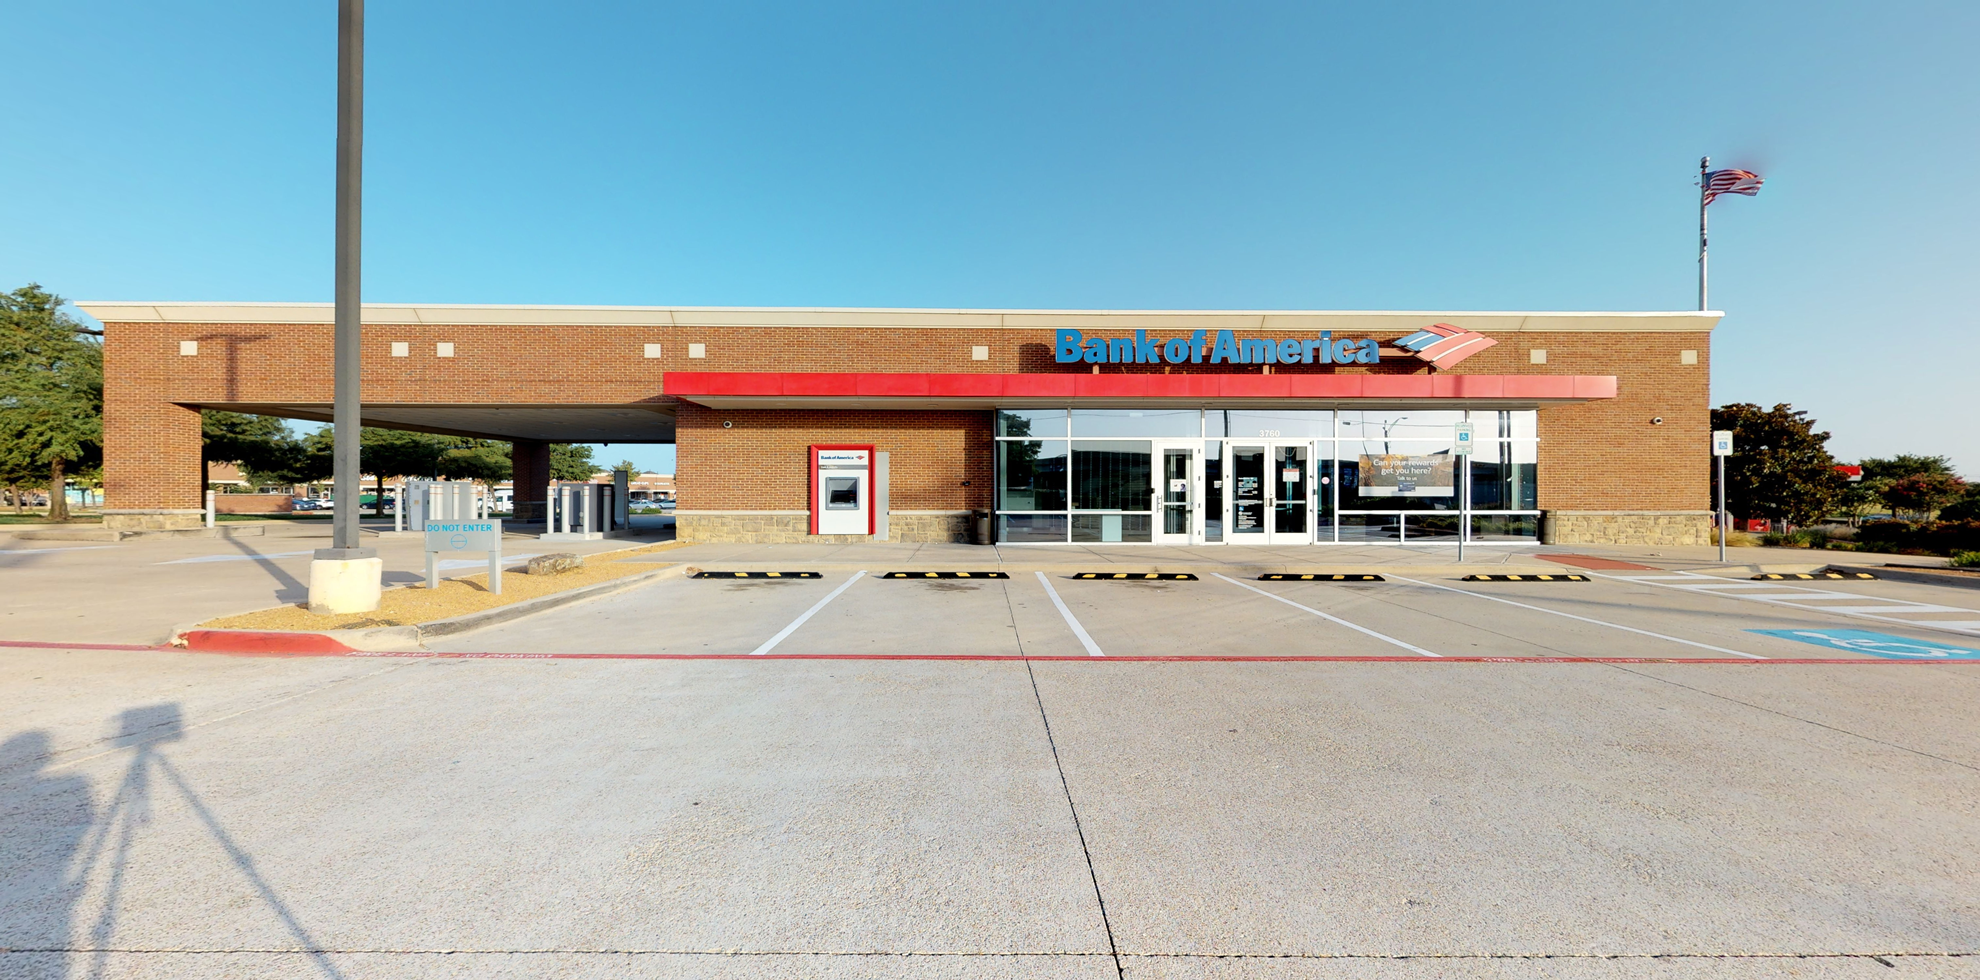 Bank of America financial center with drive-thru ATM | 3760 Highway 121, Plano, TX 75025